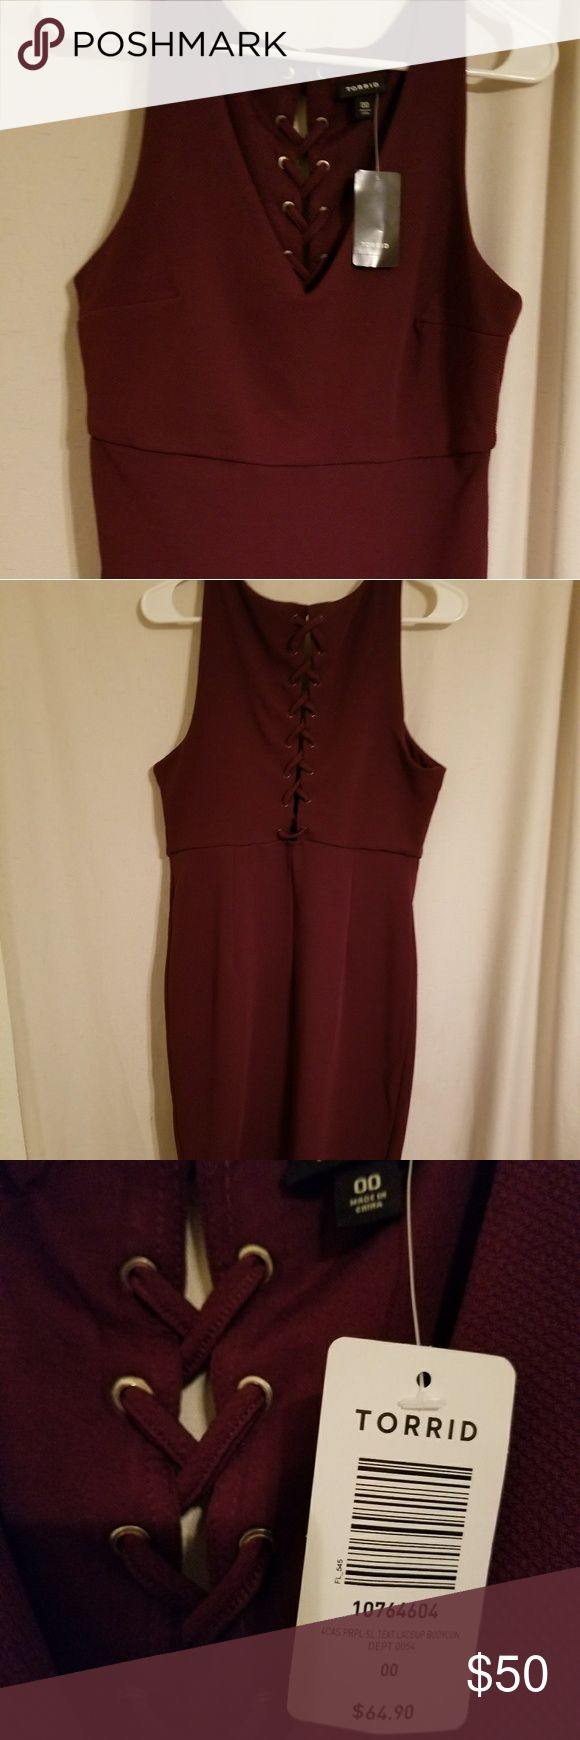 Burgundy colored strapless body con dress Torrid brand mini body con dress with lace up back. Torrid size 00 equal to a size large. Torrid Dresses Mini